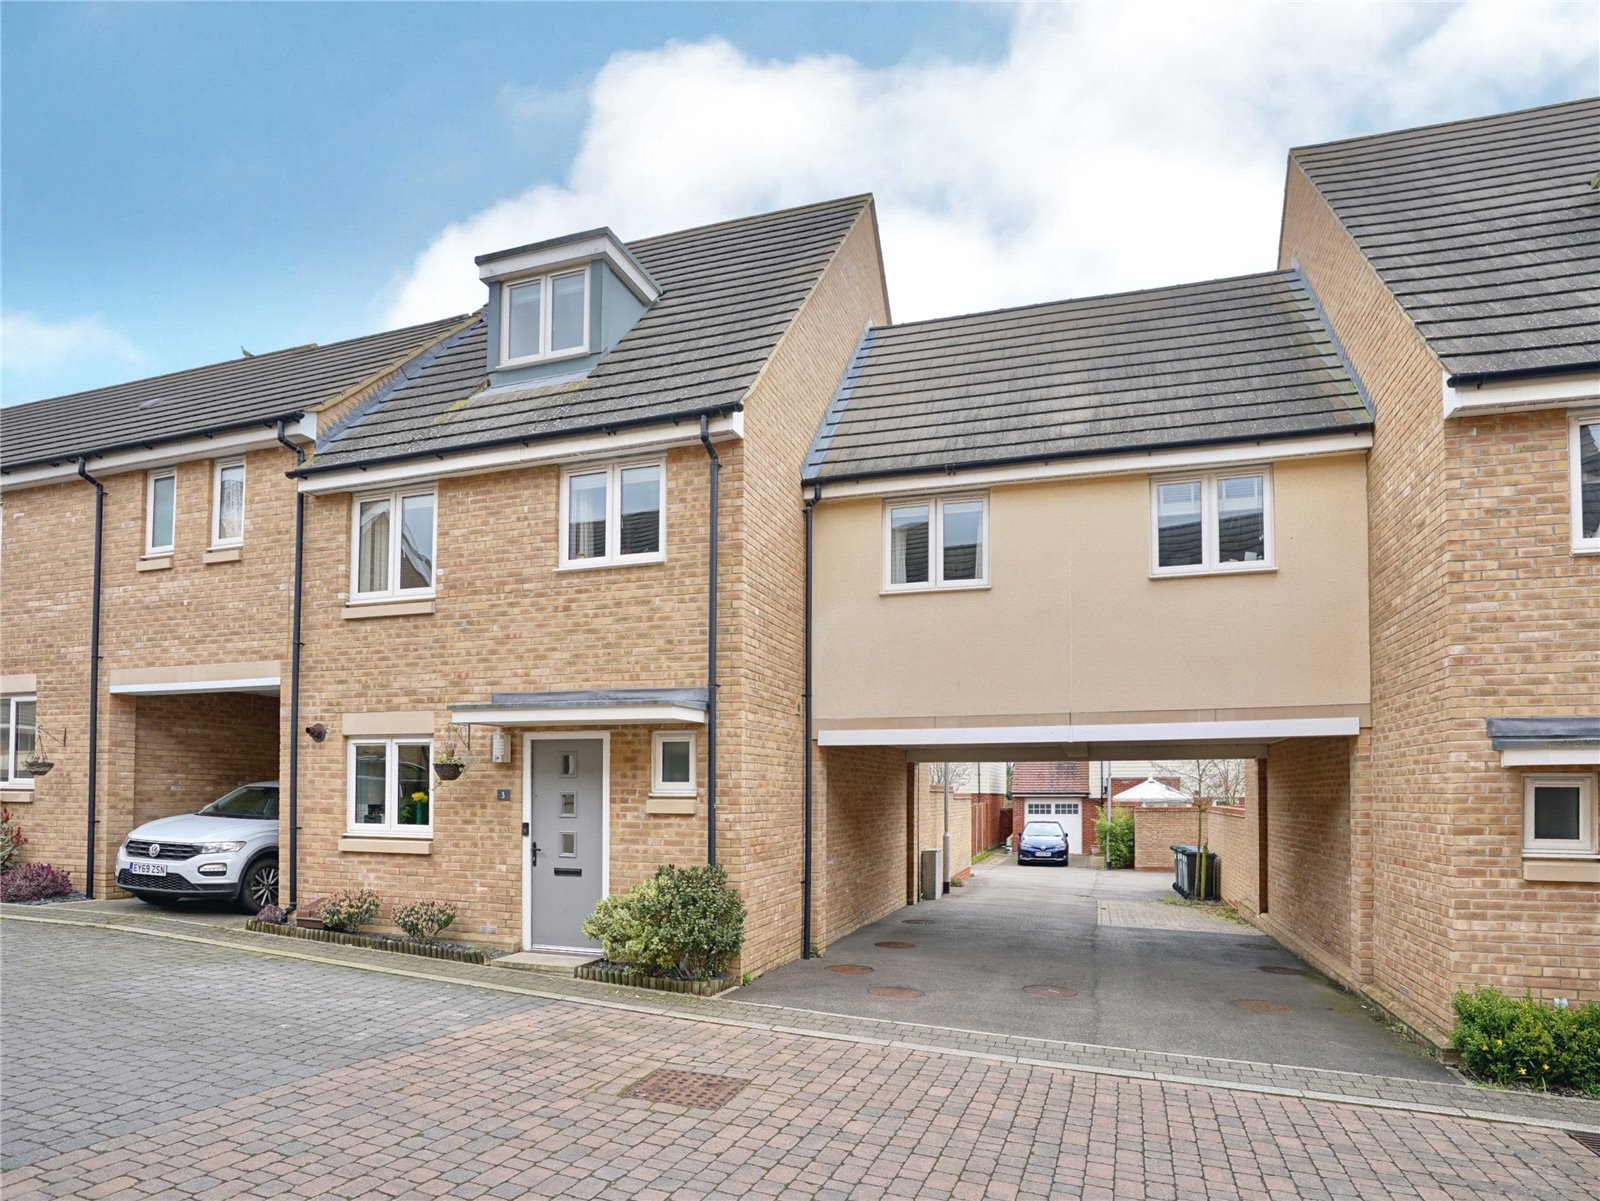 4 bed house for sale in St. Neots, PE19 6DN, PE19